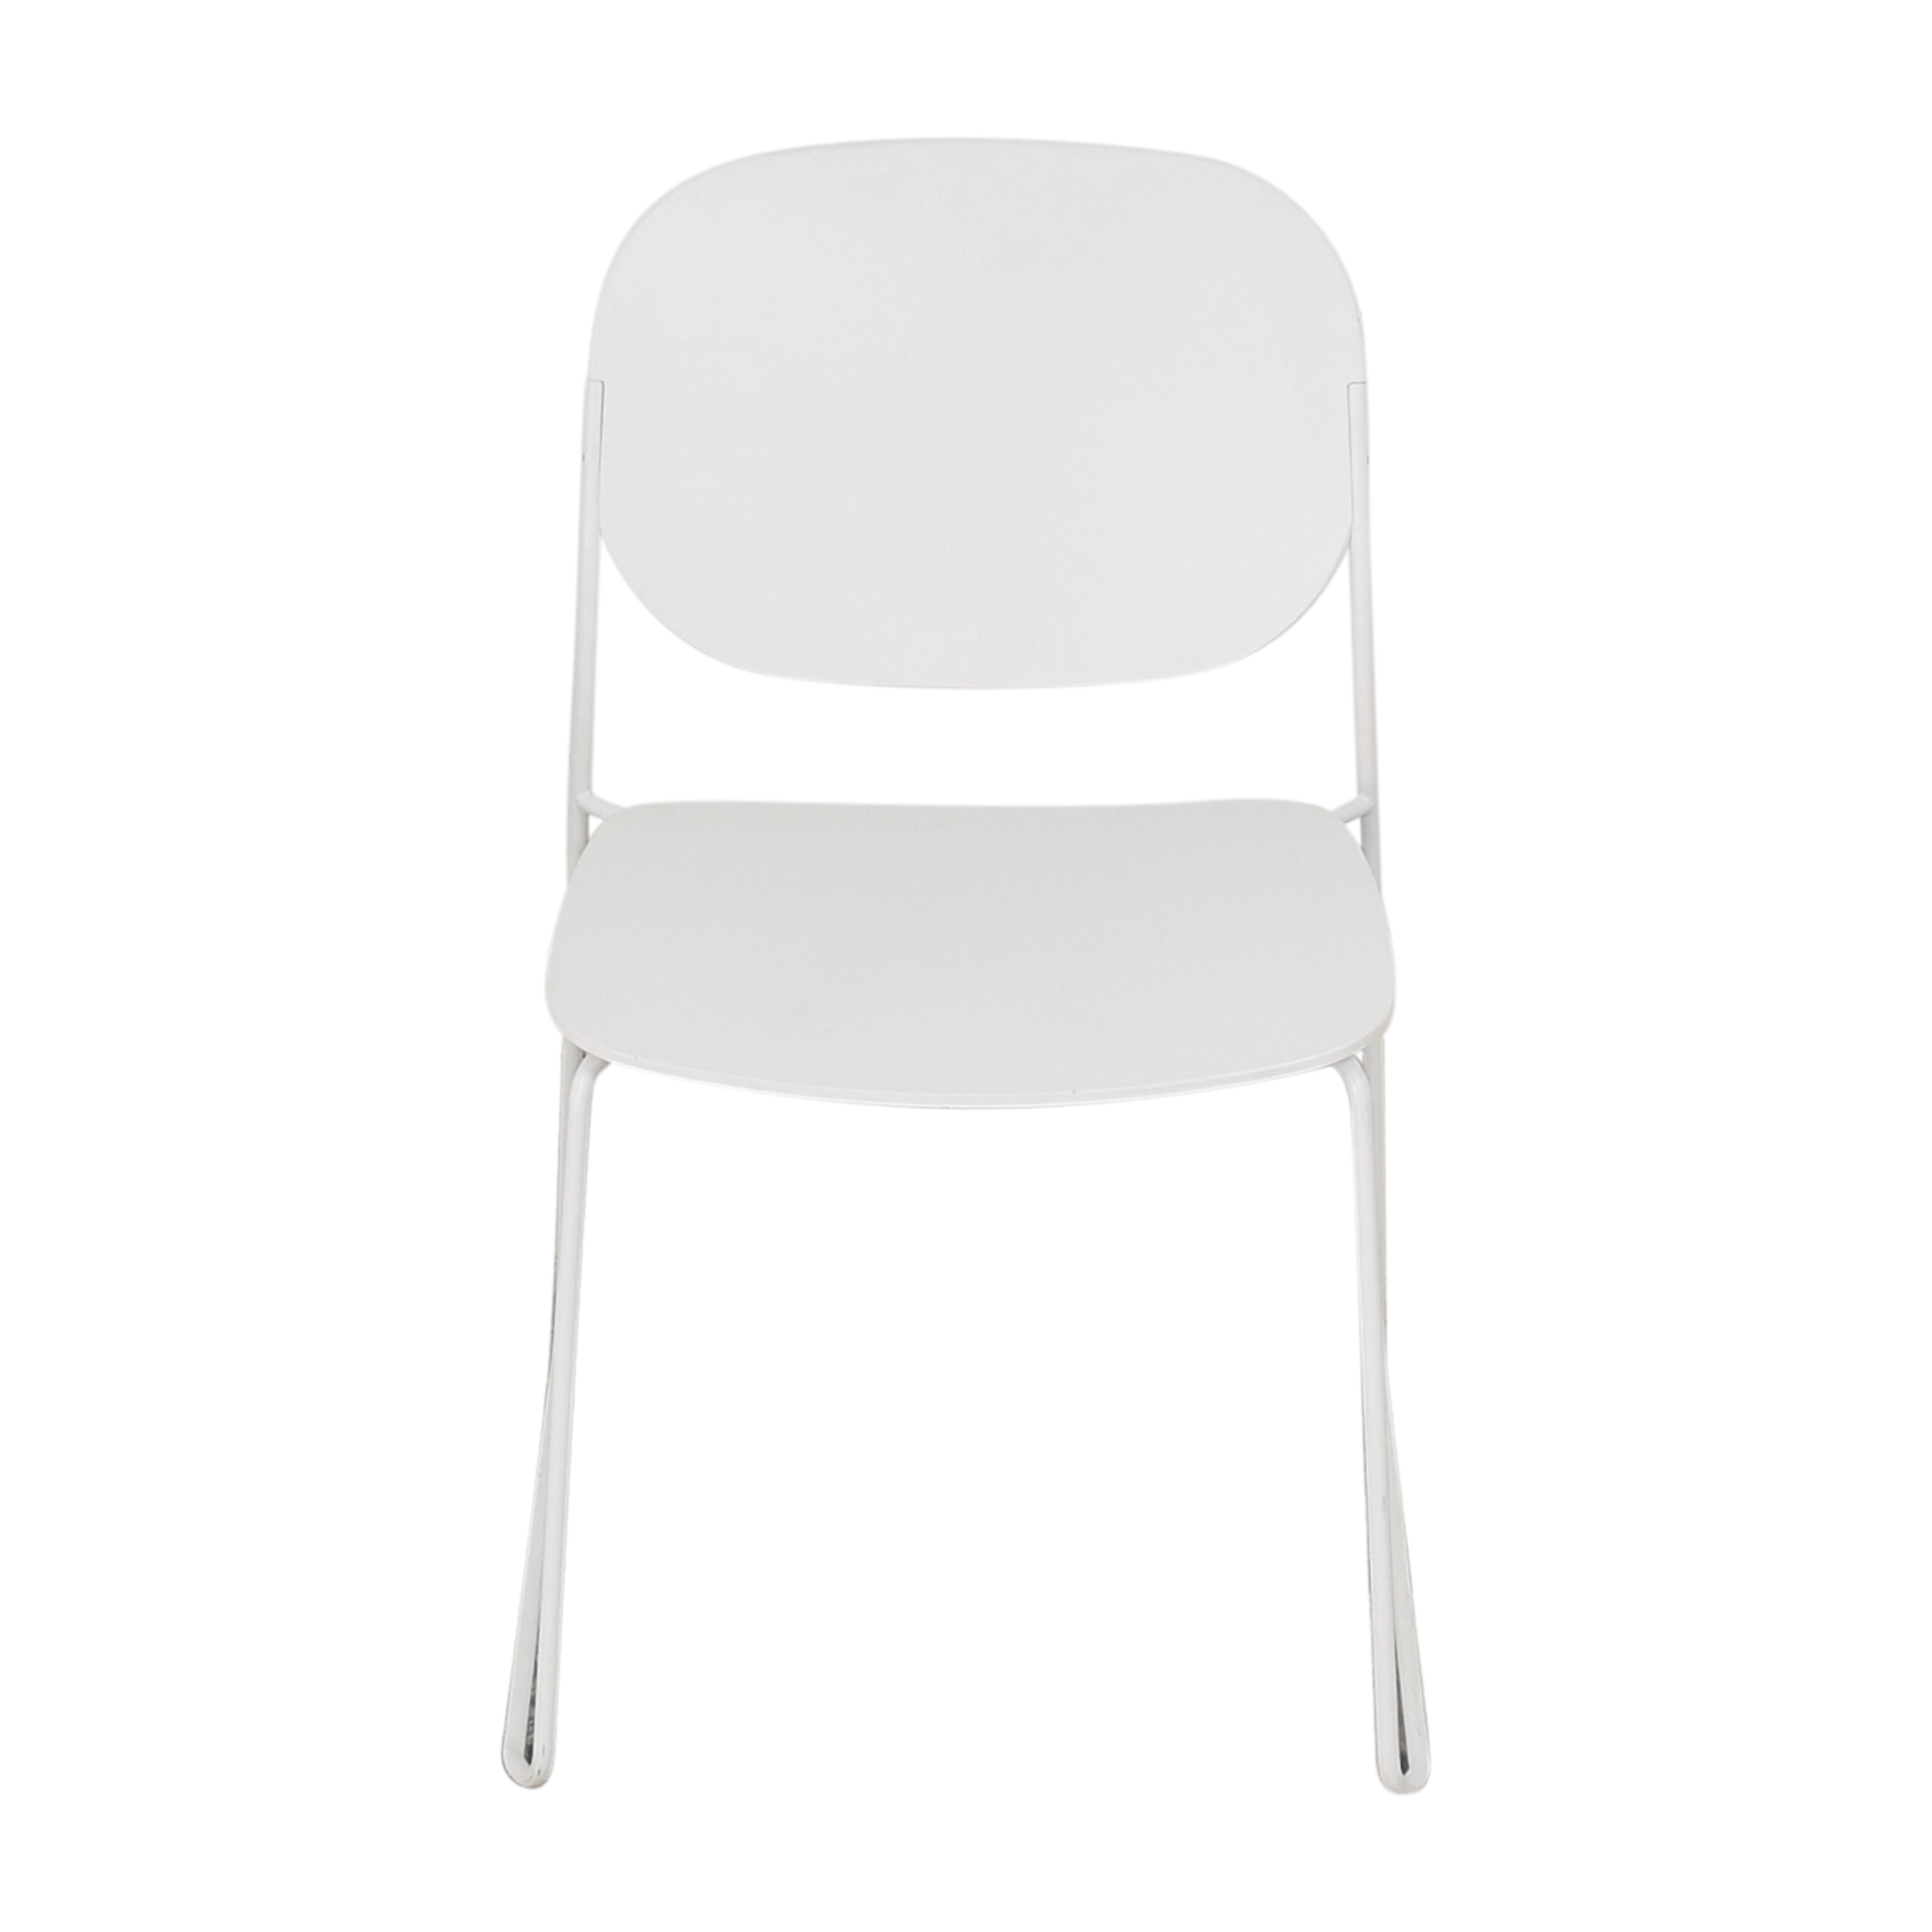 Lapalma Olo Dining Chair / Chairs